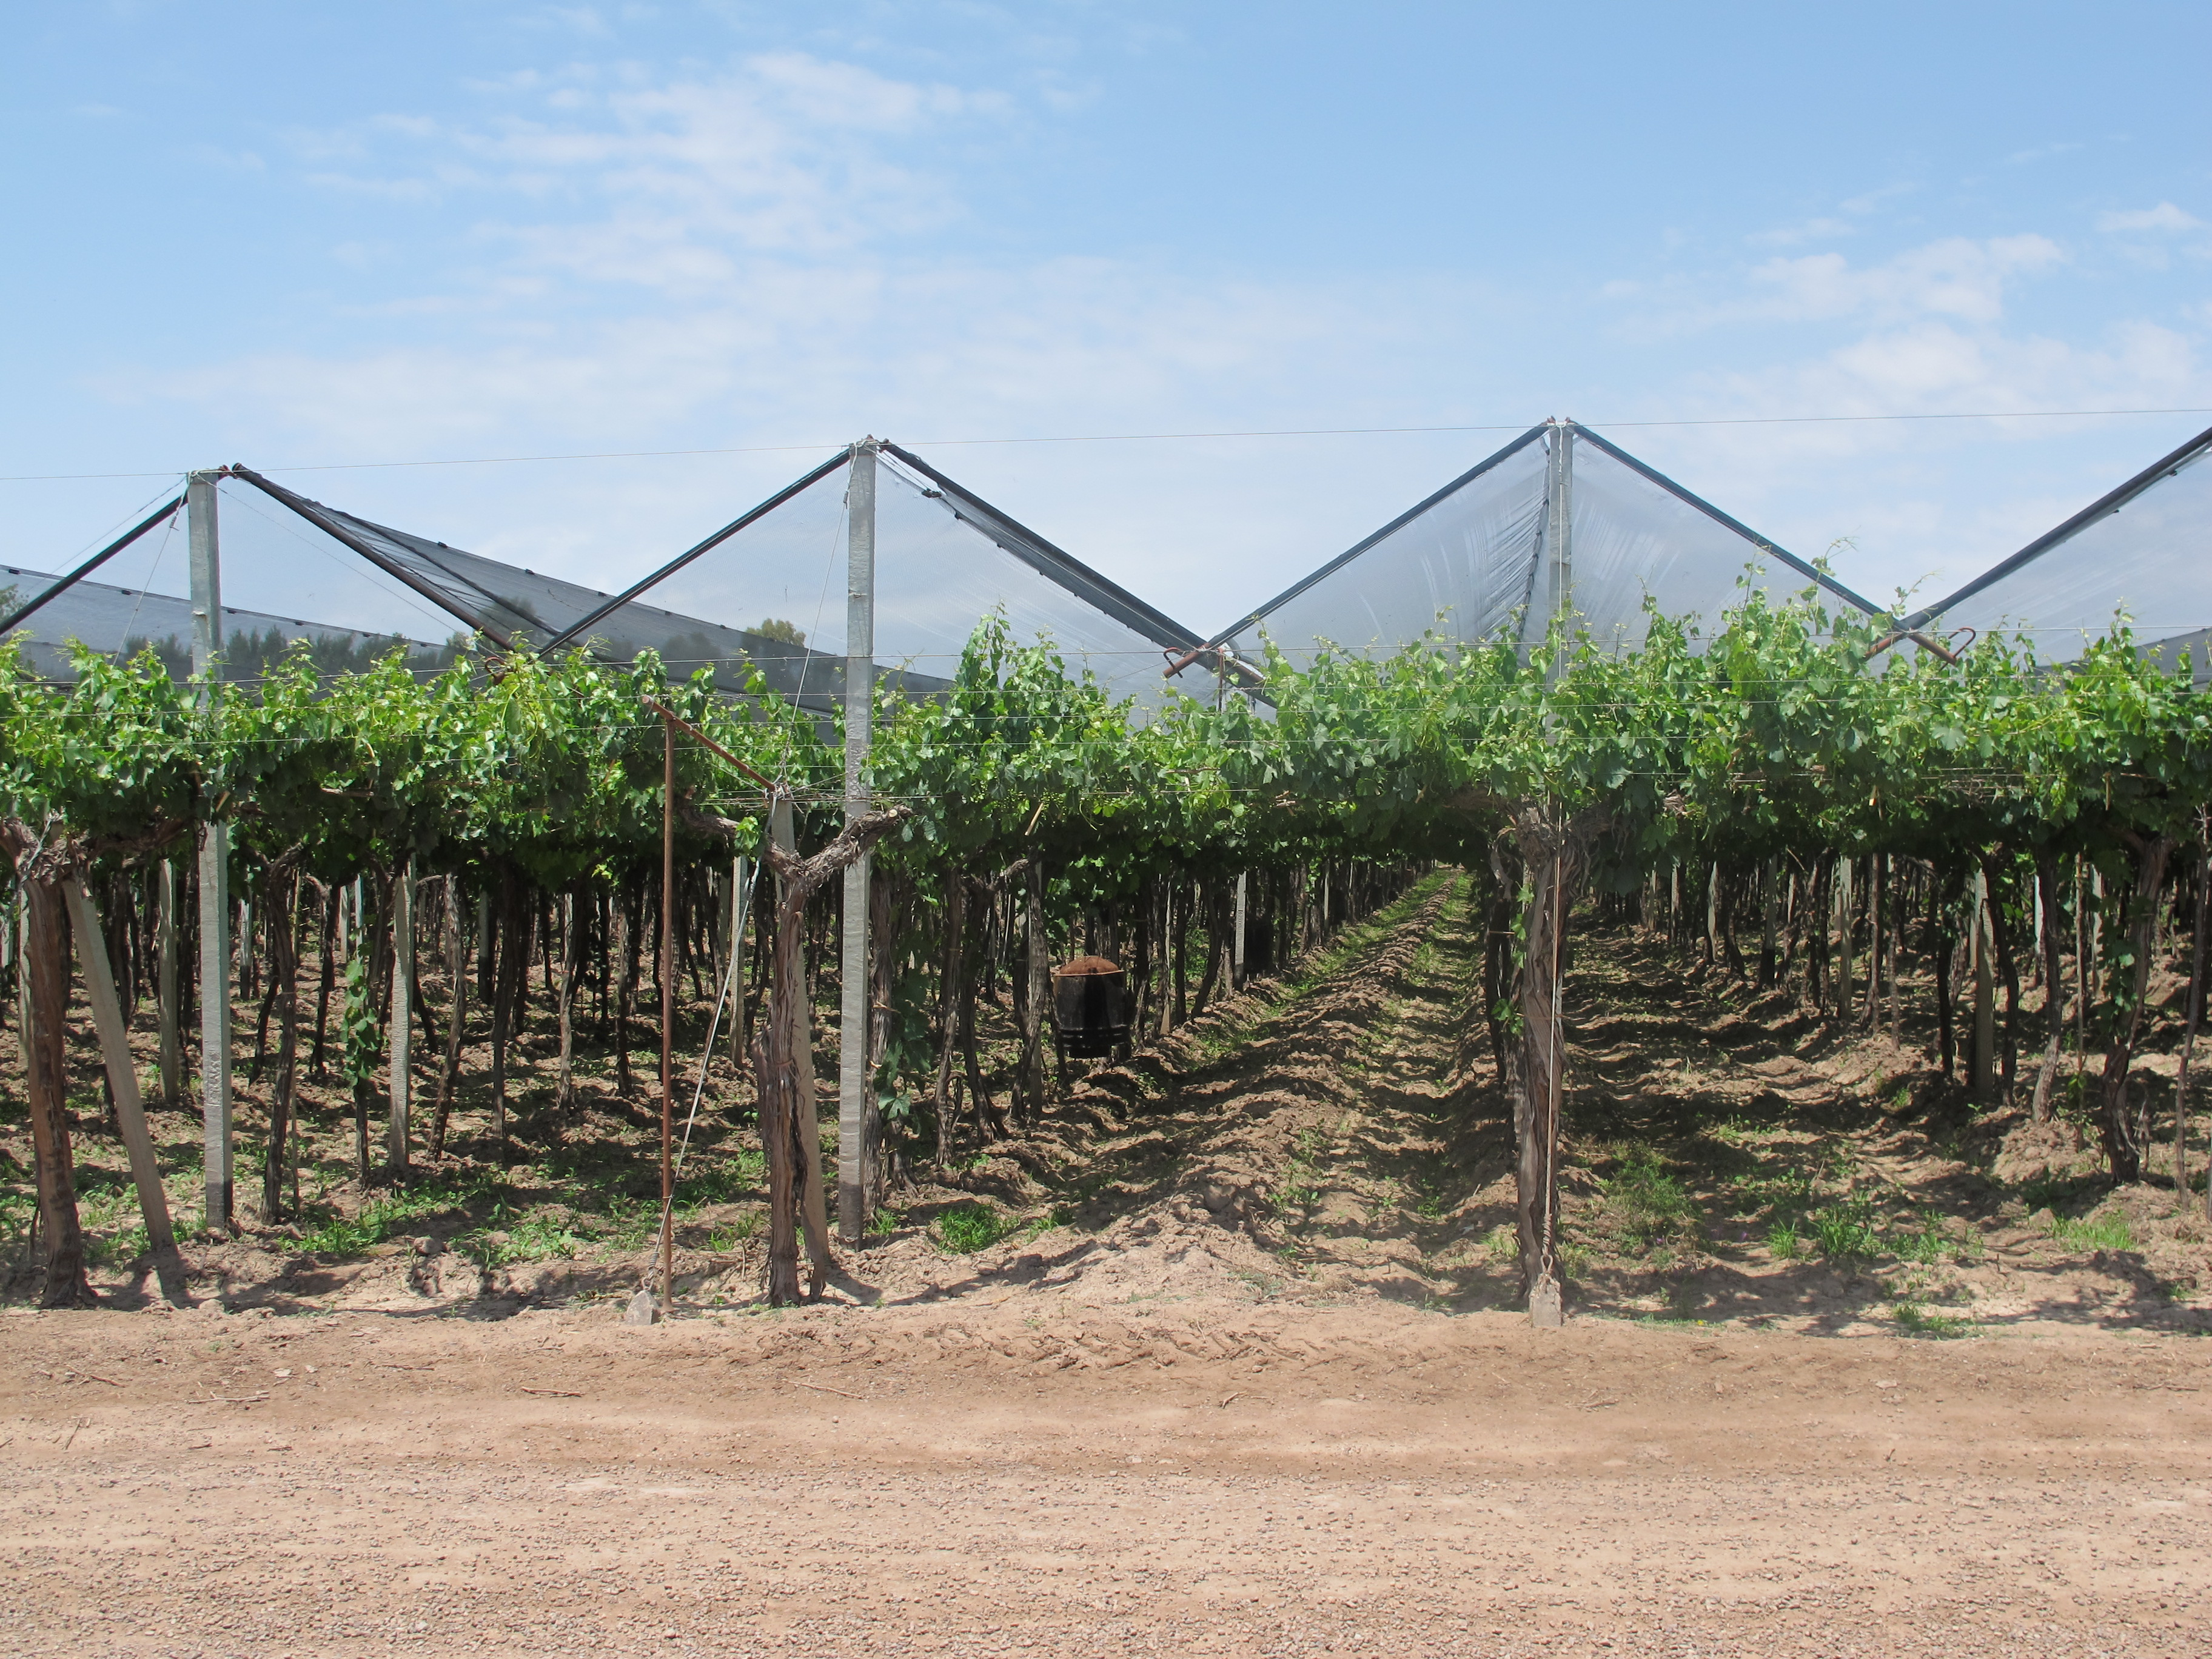 Vineyard protected from hail by nets